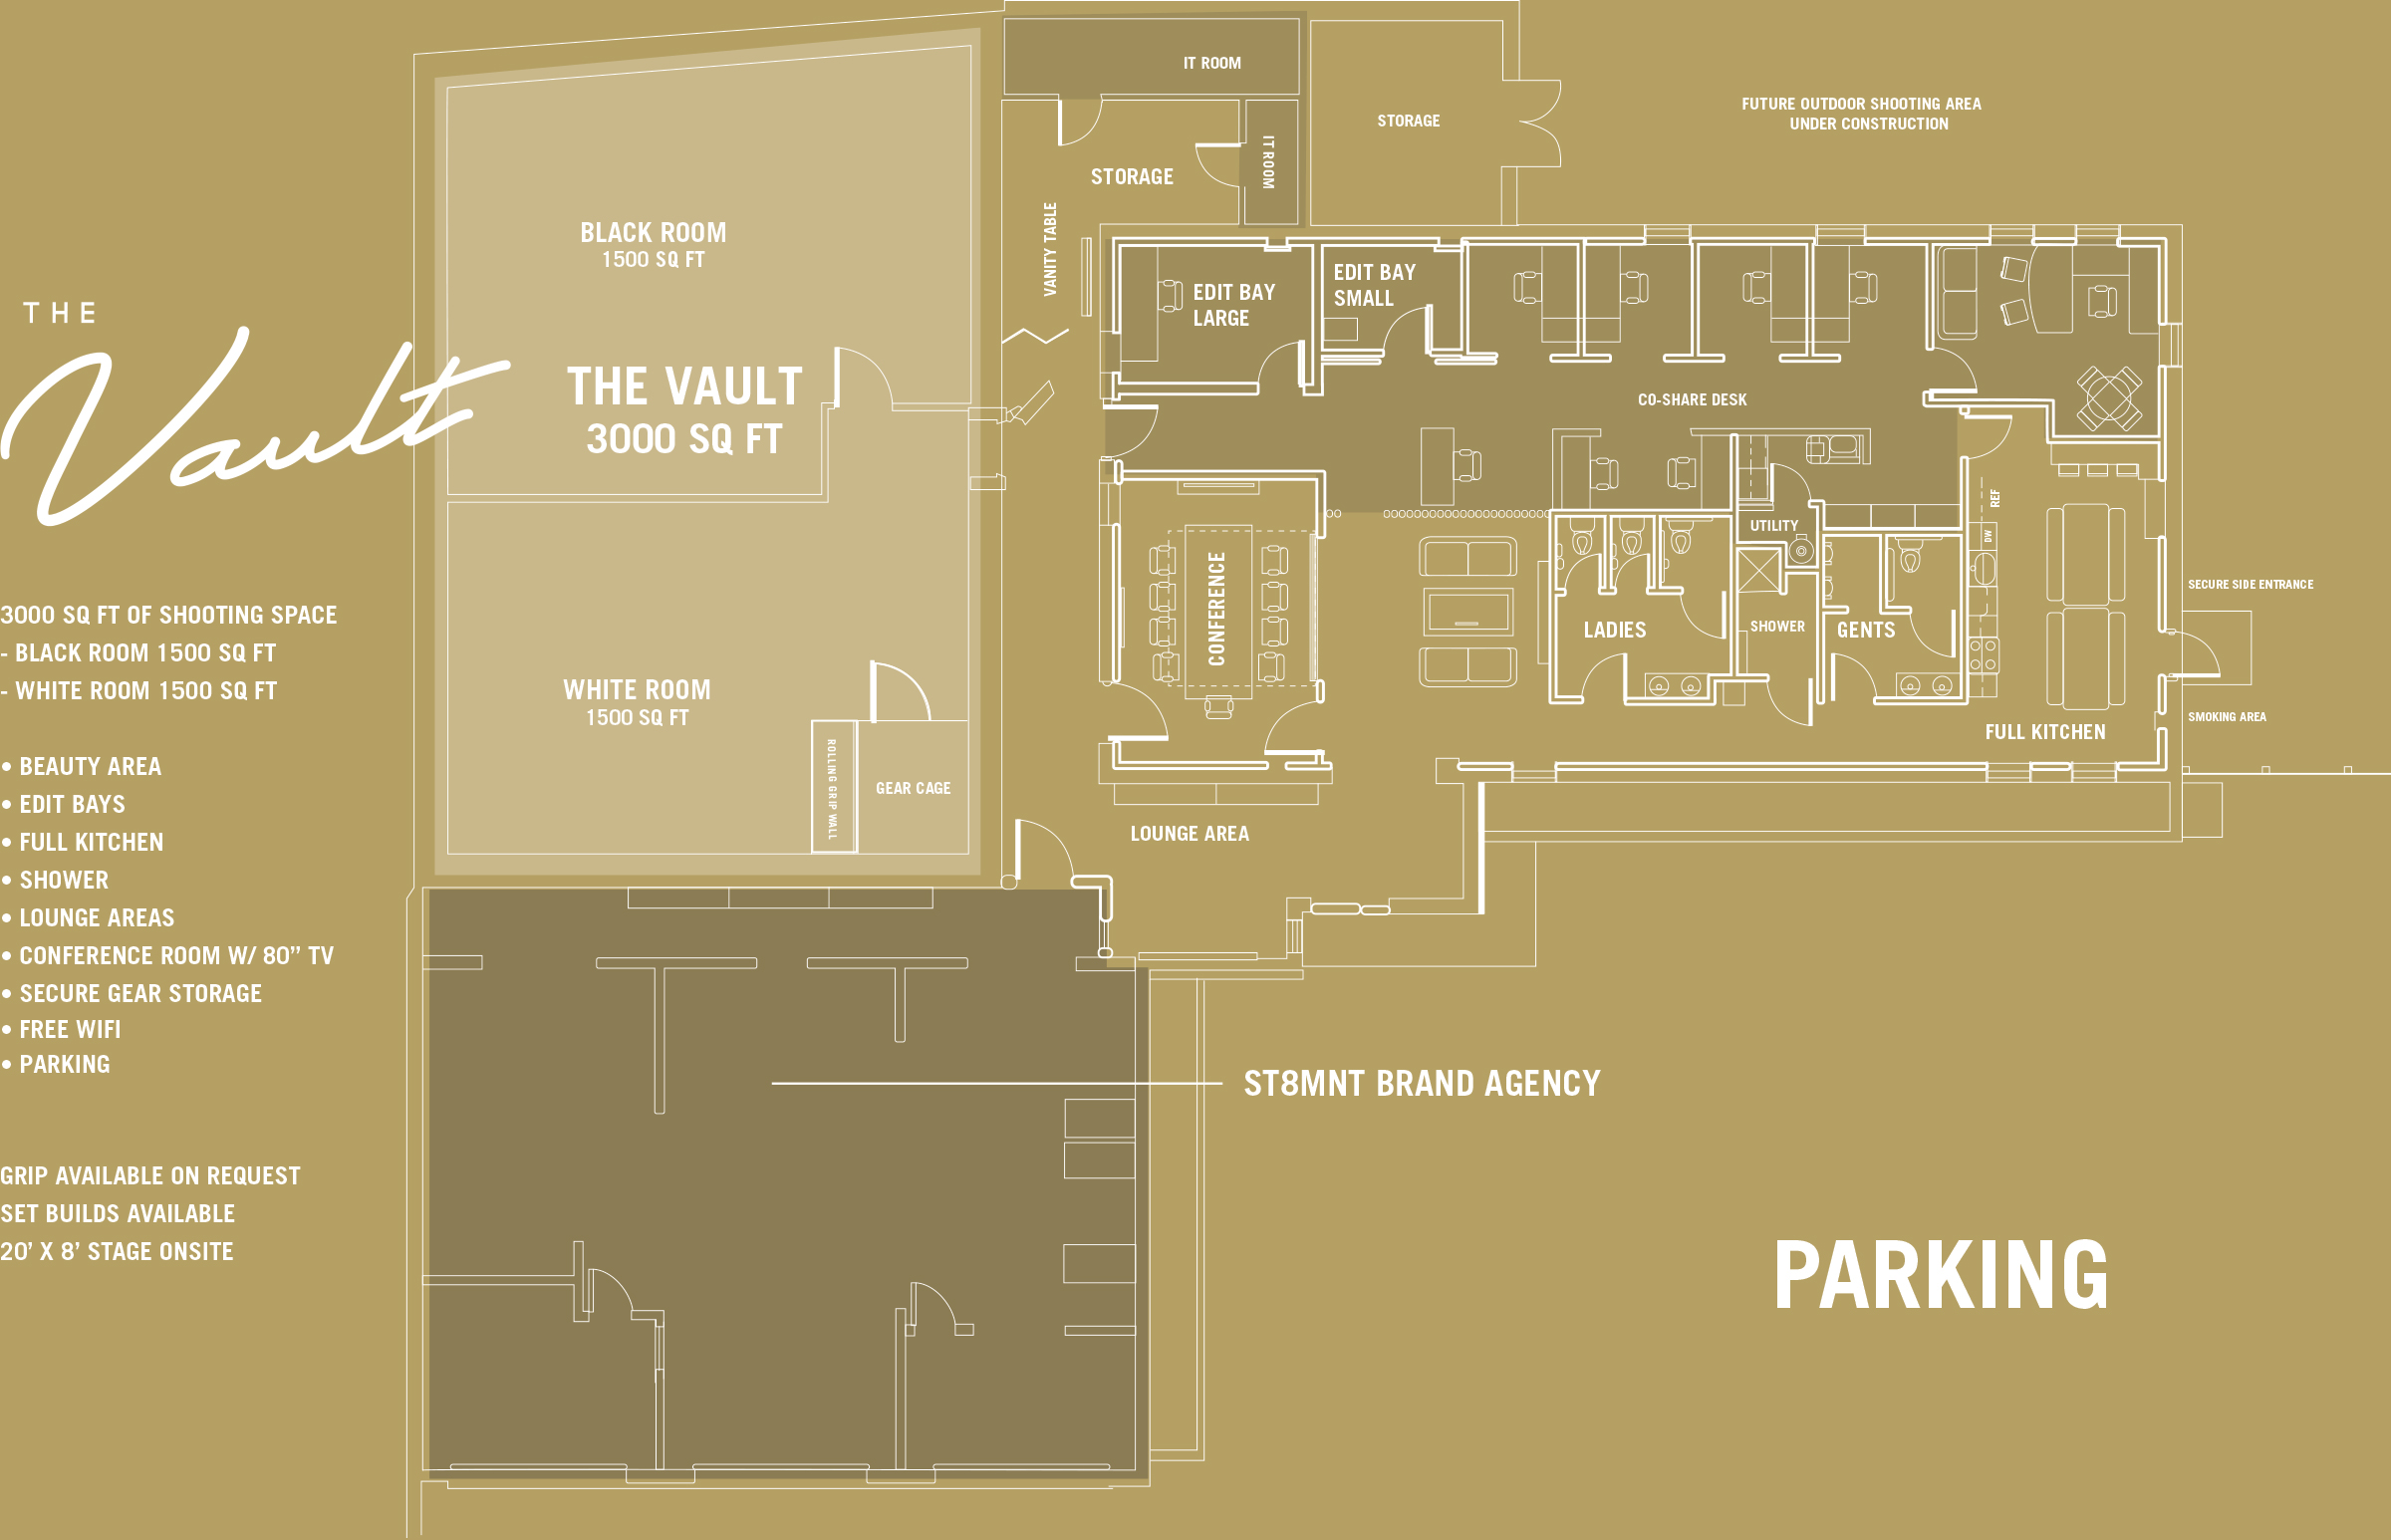 The Vault Nashville Floorplan and Map